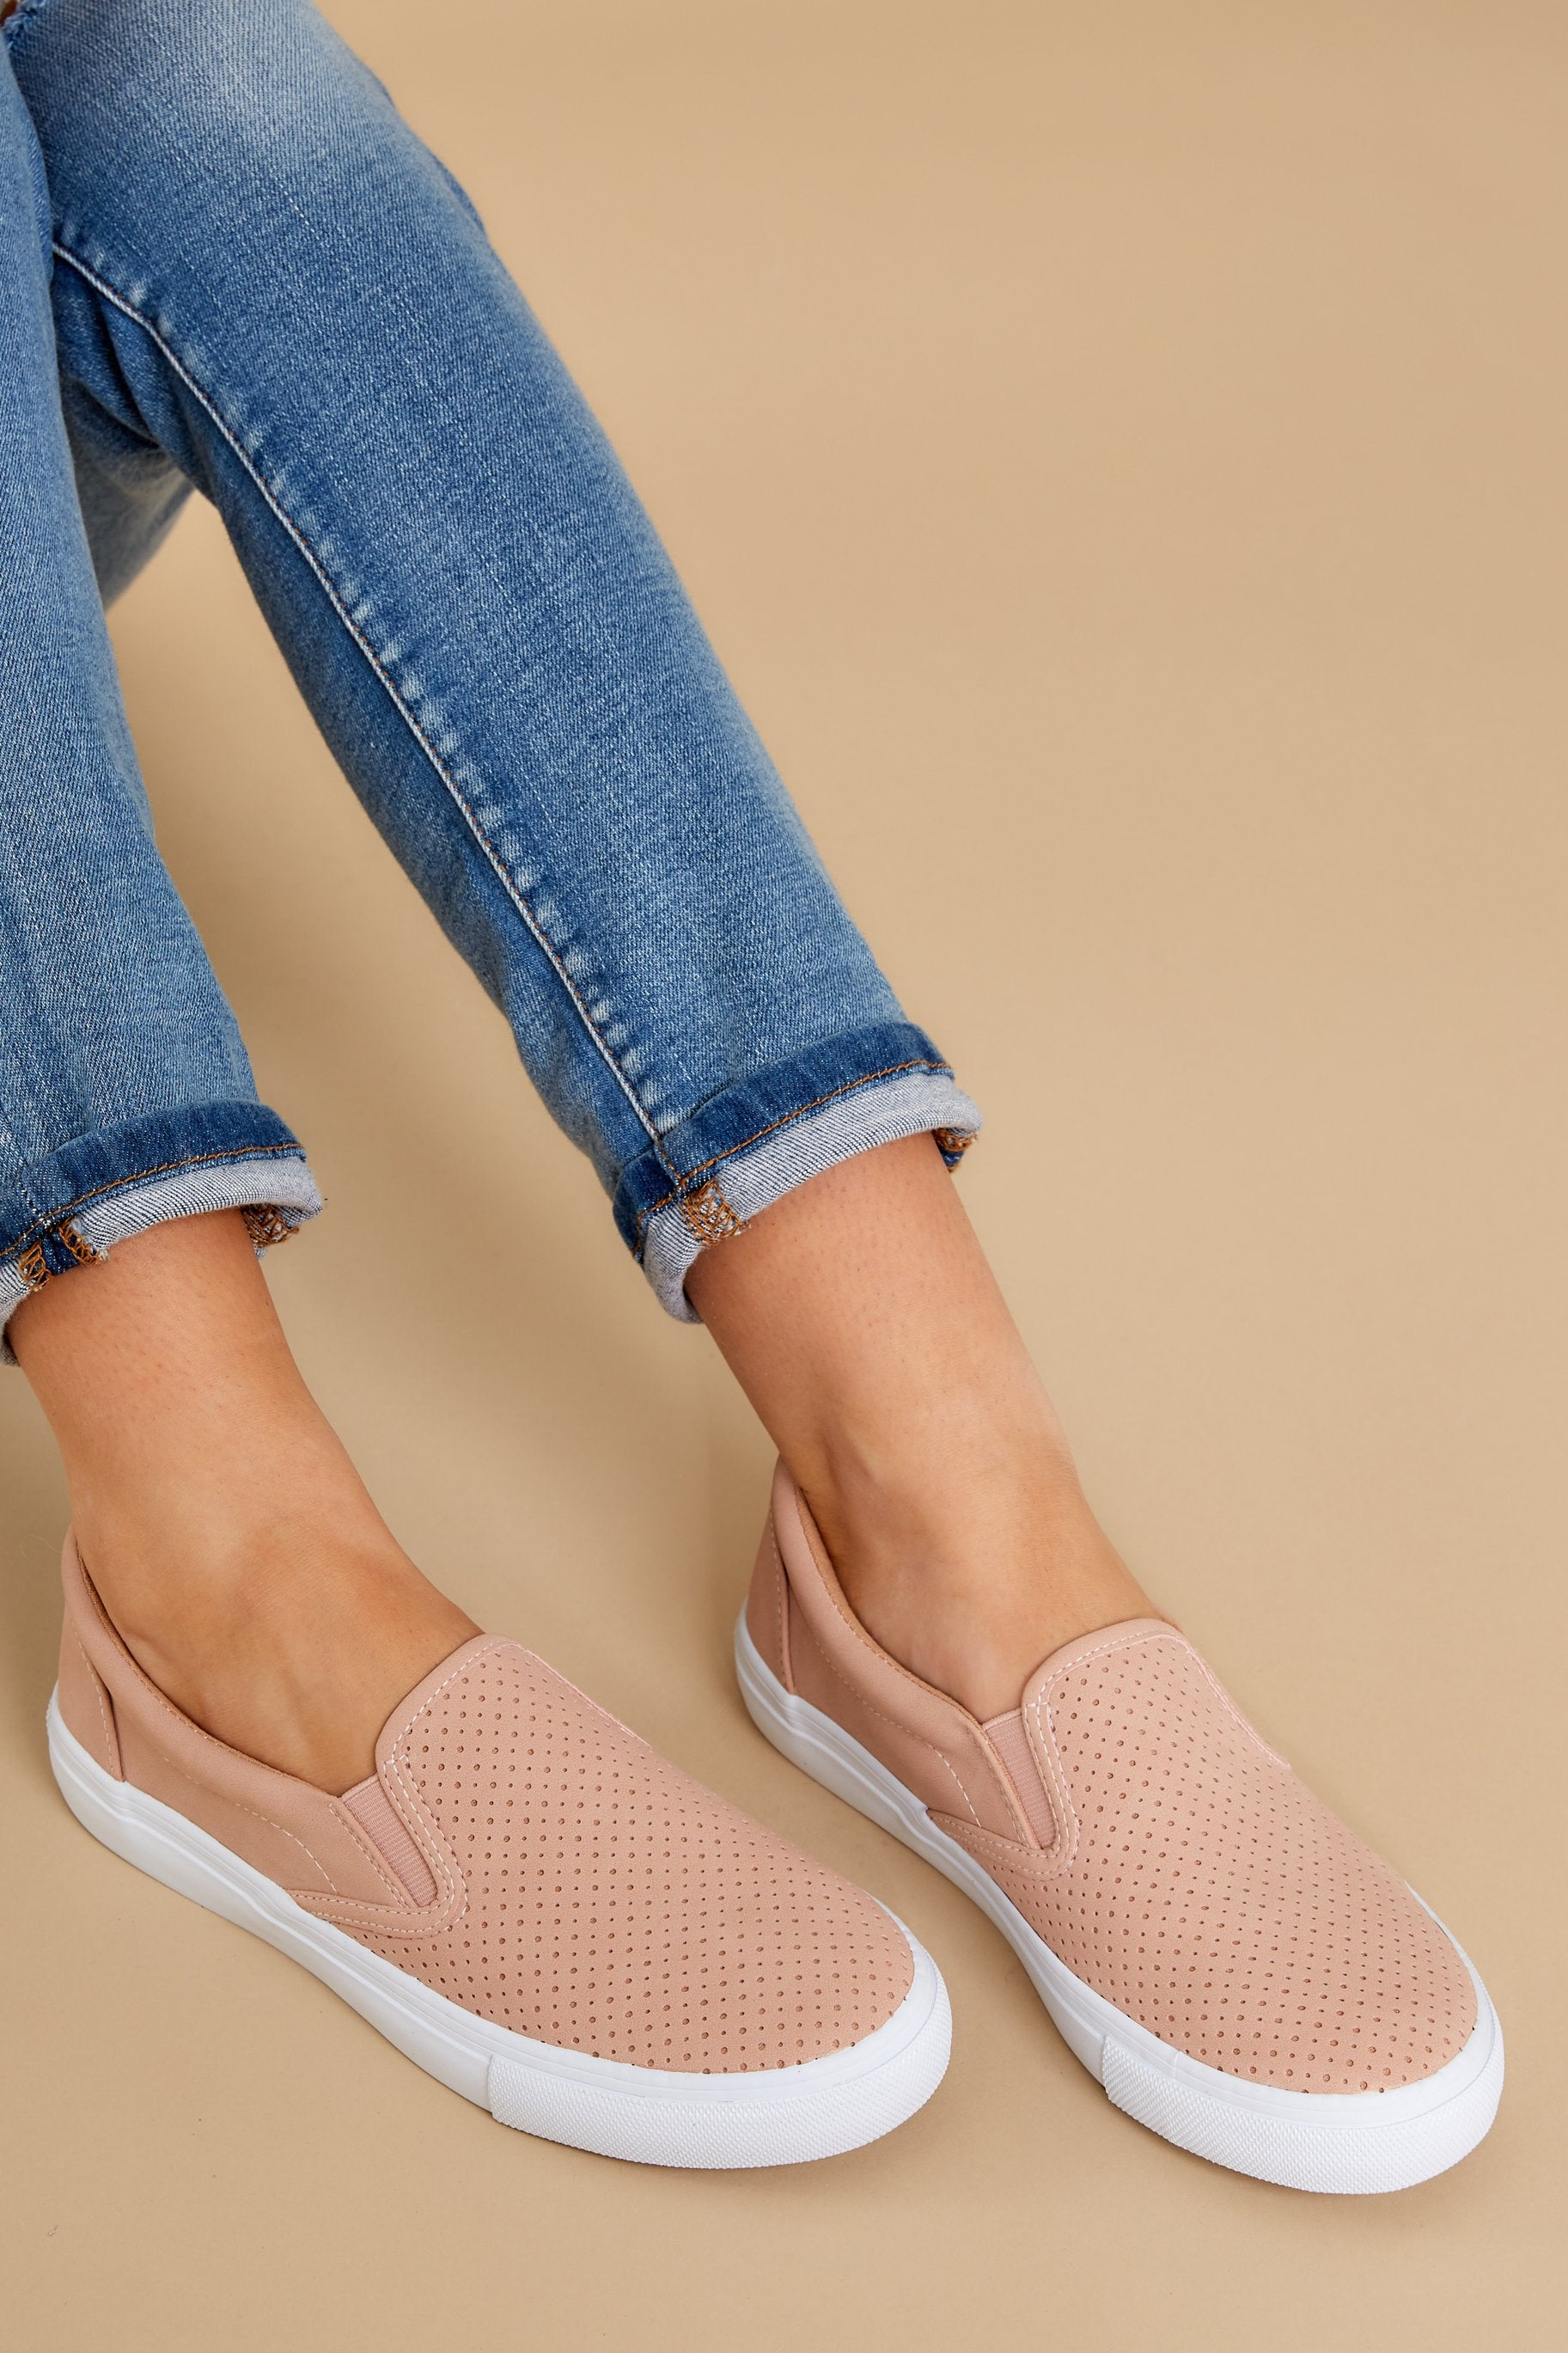 4 One Step Away Light Pink Slip On Sneakers at reddressboutique.com